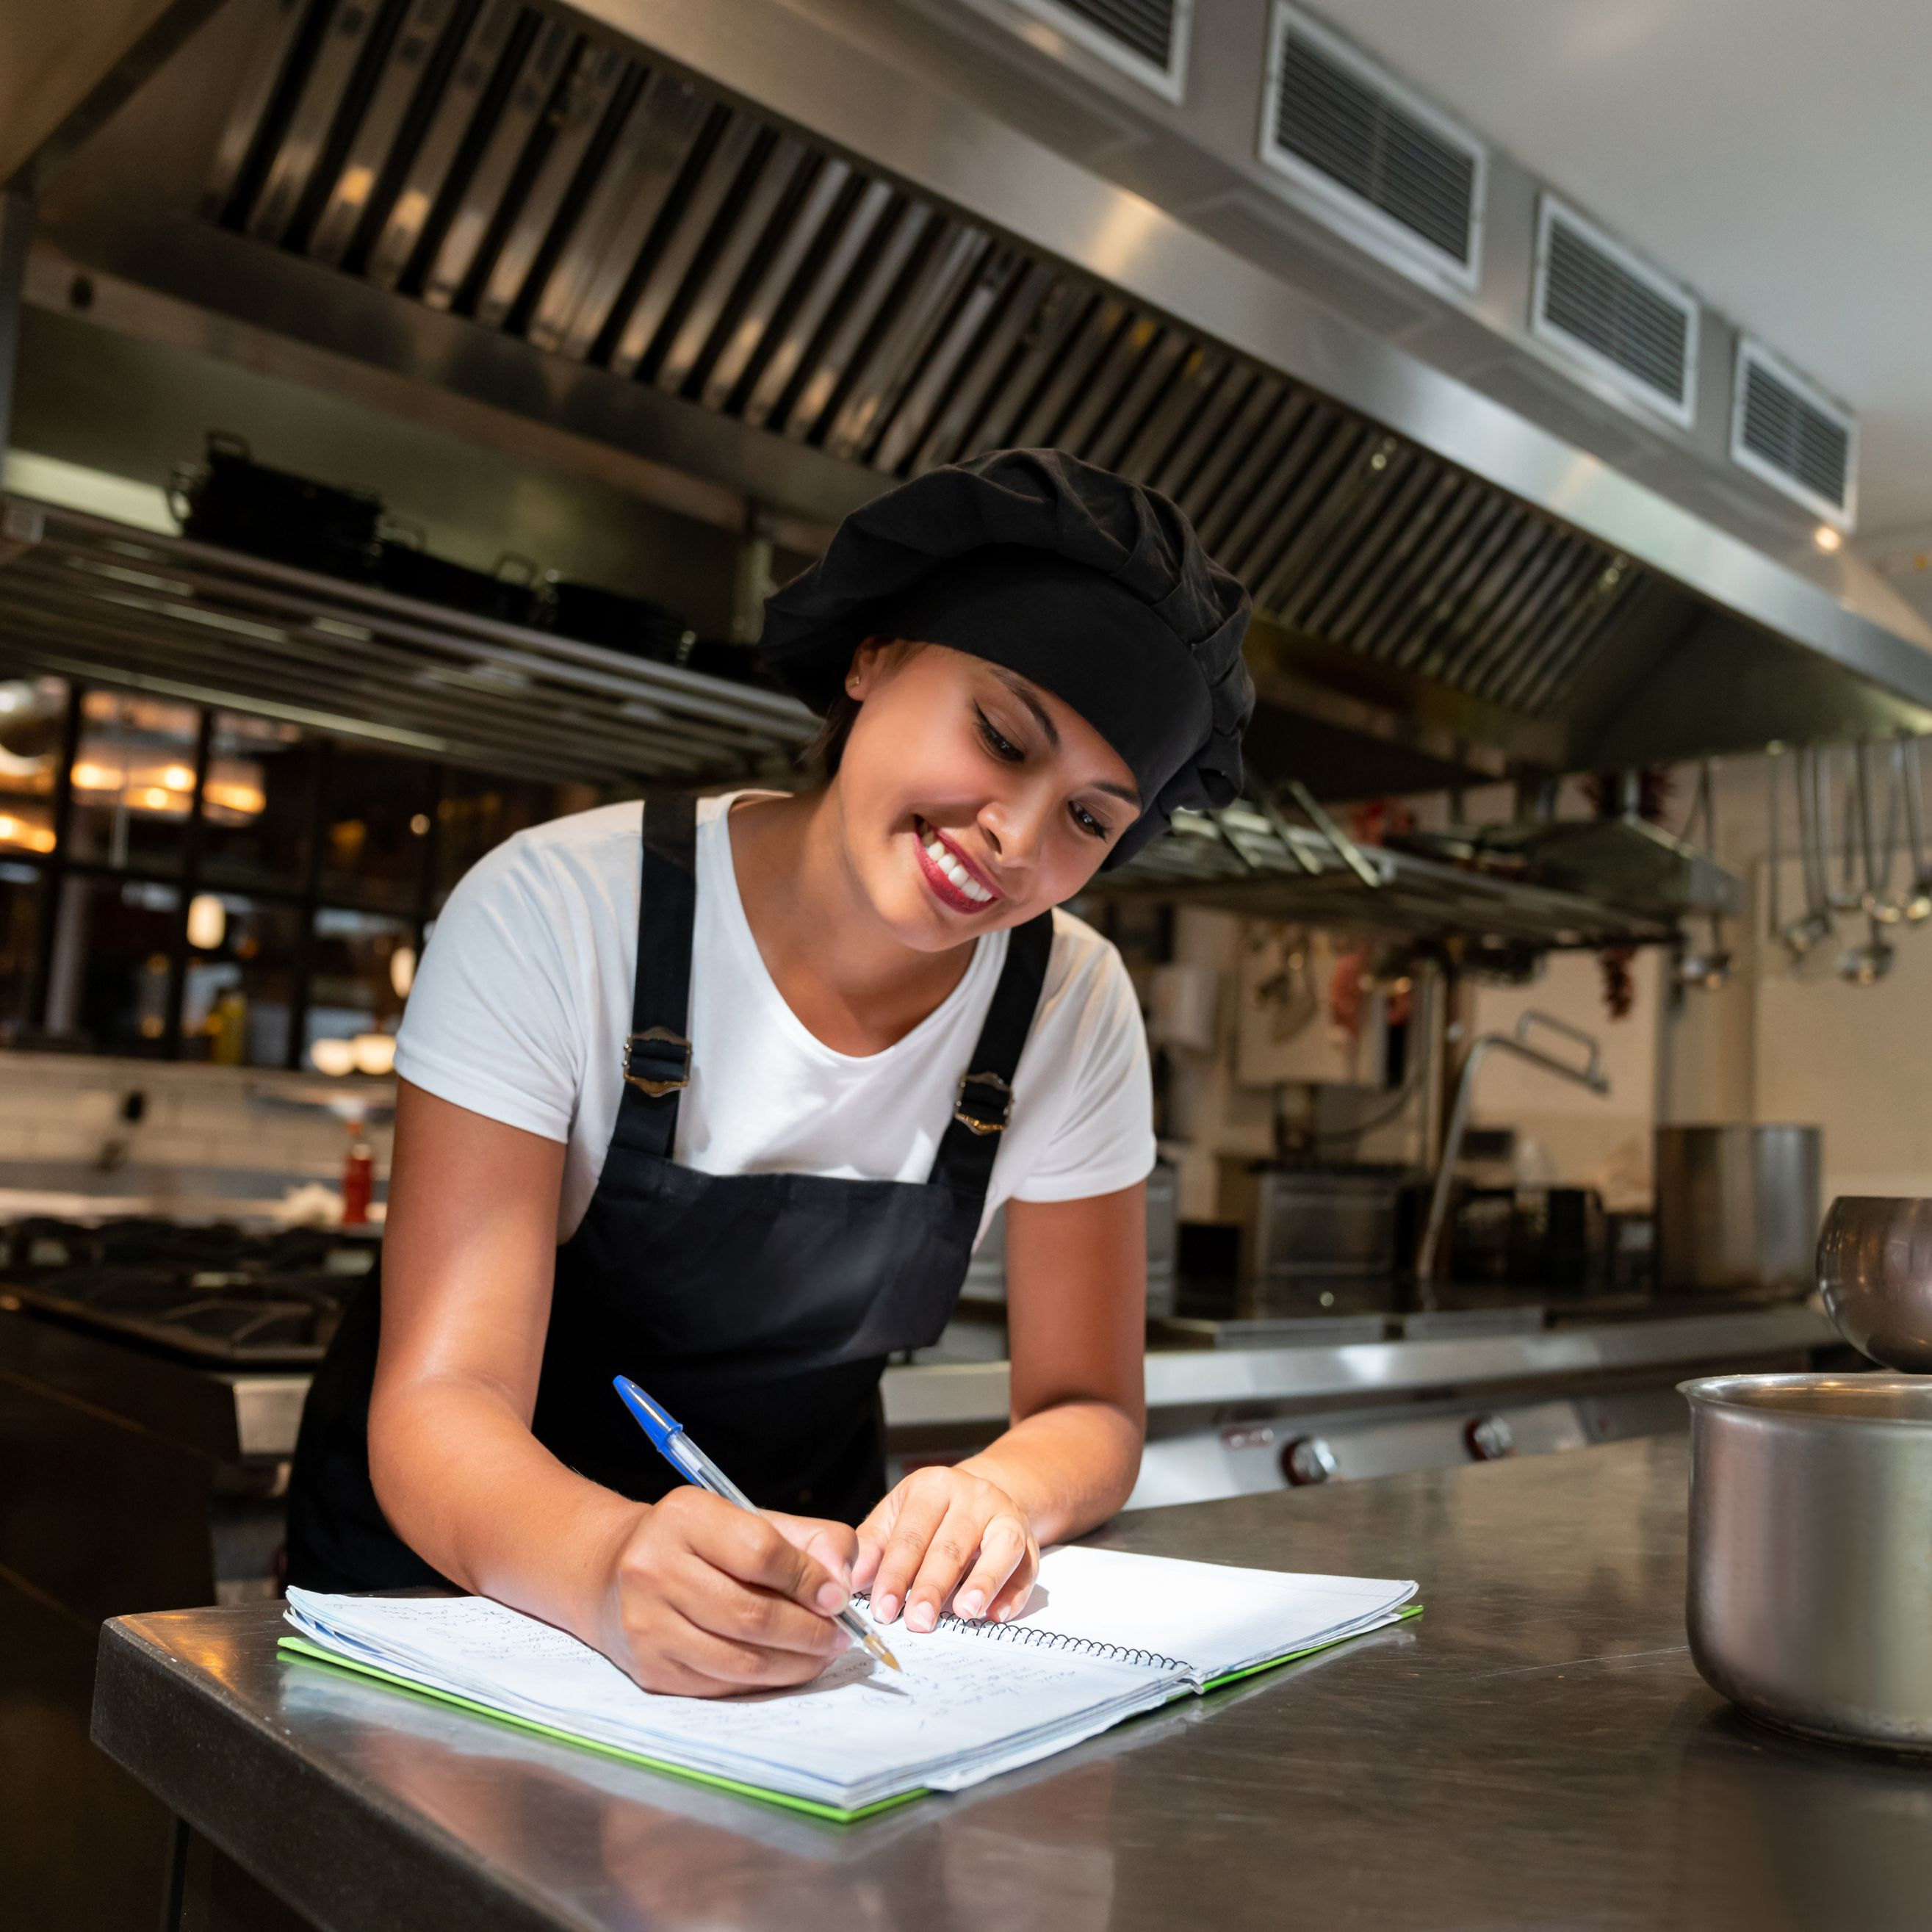 How to Write a Cookbook: Ingredients for Success